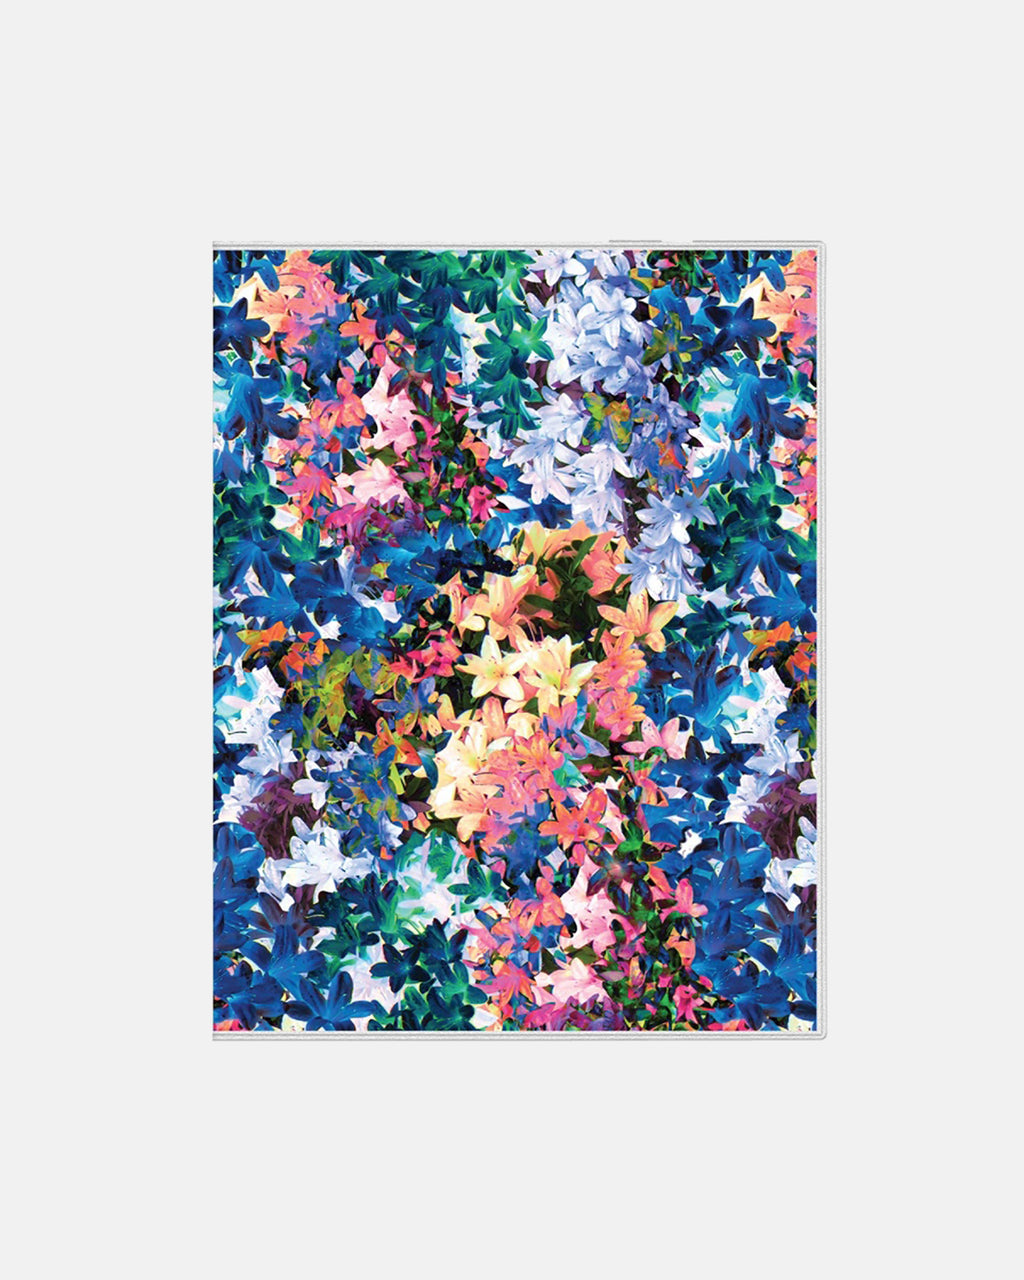 PP10026 - ye Dye Flowers 2019 Weekly and Monthly Planner - accessories - stationary - 12 months: january to december 2 pages per month with a reference calendar polypropylene cover with a staple binding helps prortect the pages